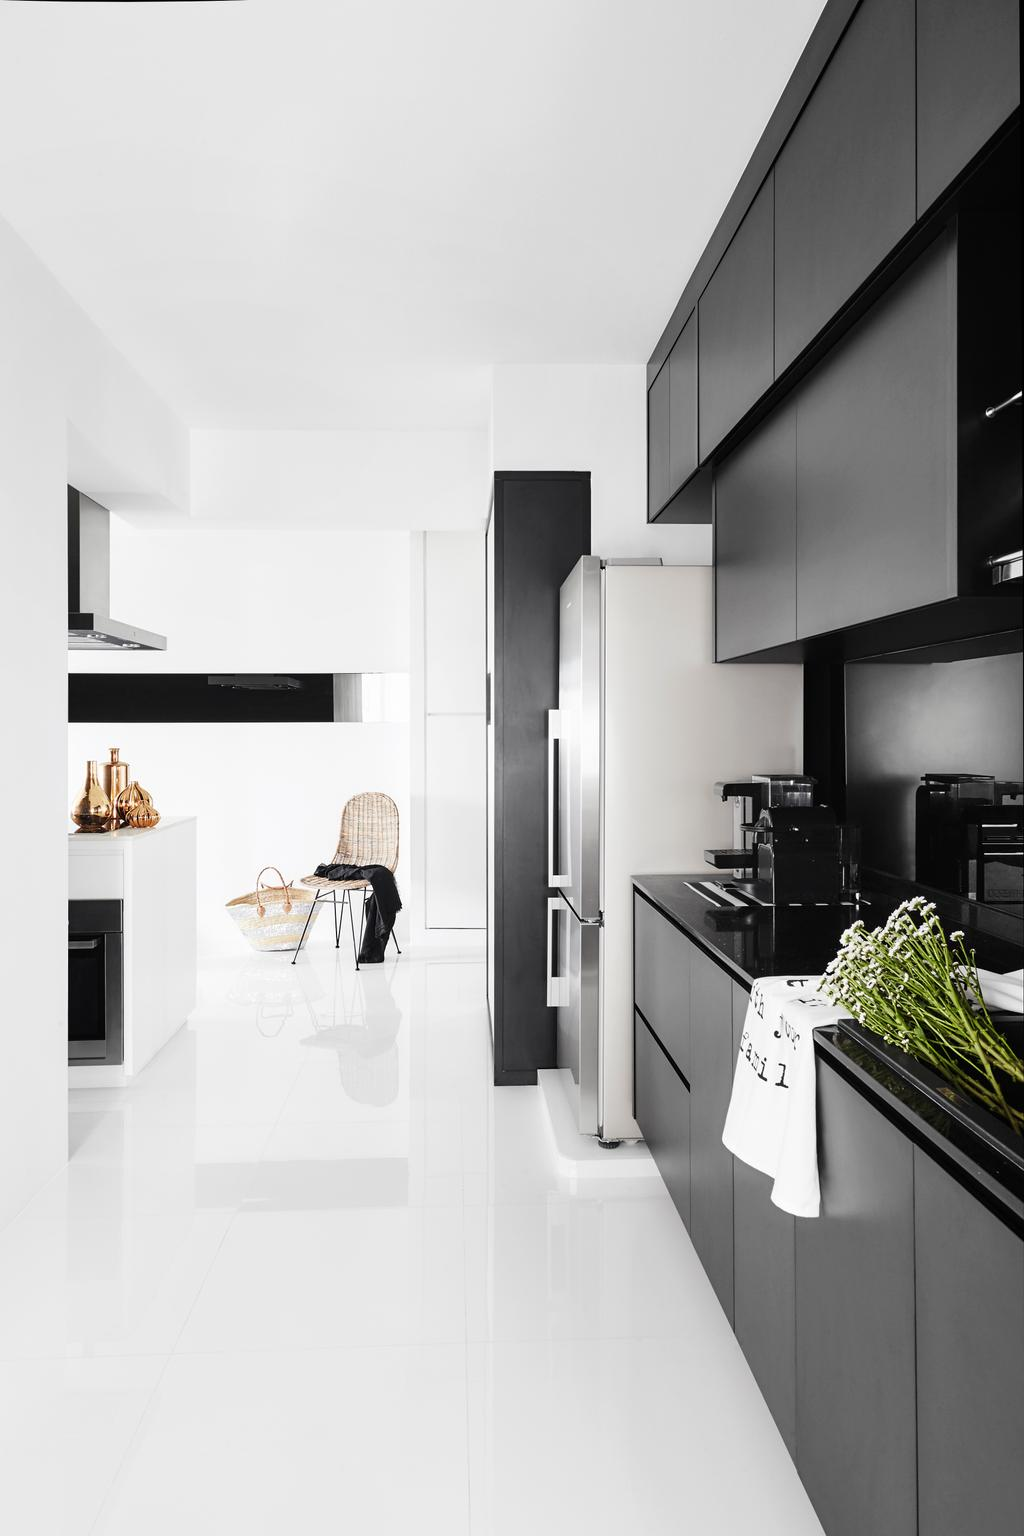 Modern, HDB, Living Room, Edgefield Plains, Interior Designer, Dan's Workshop, Scandinavian, Knobless, Black Cabinets, Kitchen Cabinets, Open Concept, Open Kitchen, Monochrome, Black And White, Flora, Jar, Plant, Potted Plant, Pottery, Vase, Appliance, Electrical Device, Oven, Collage, Poster